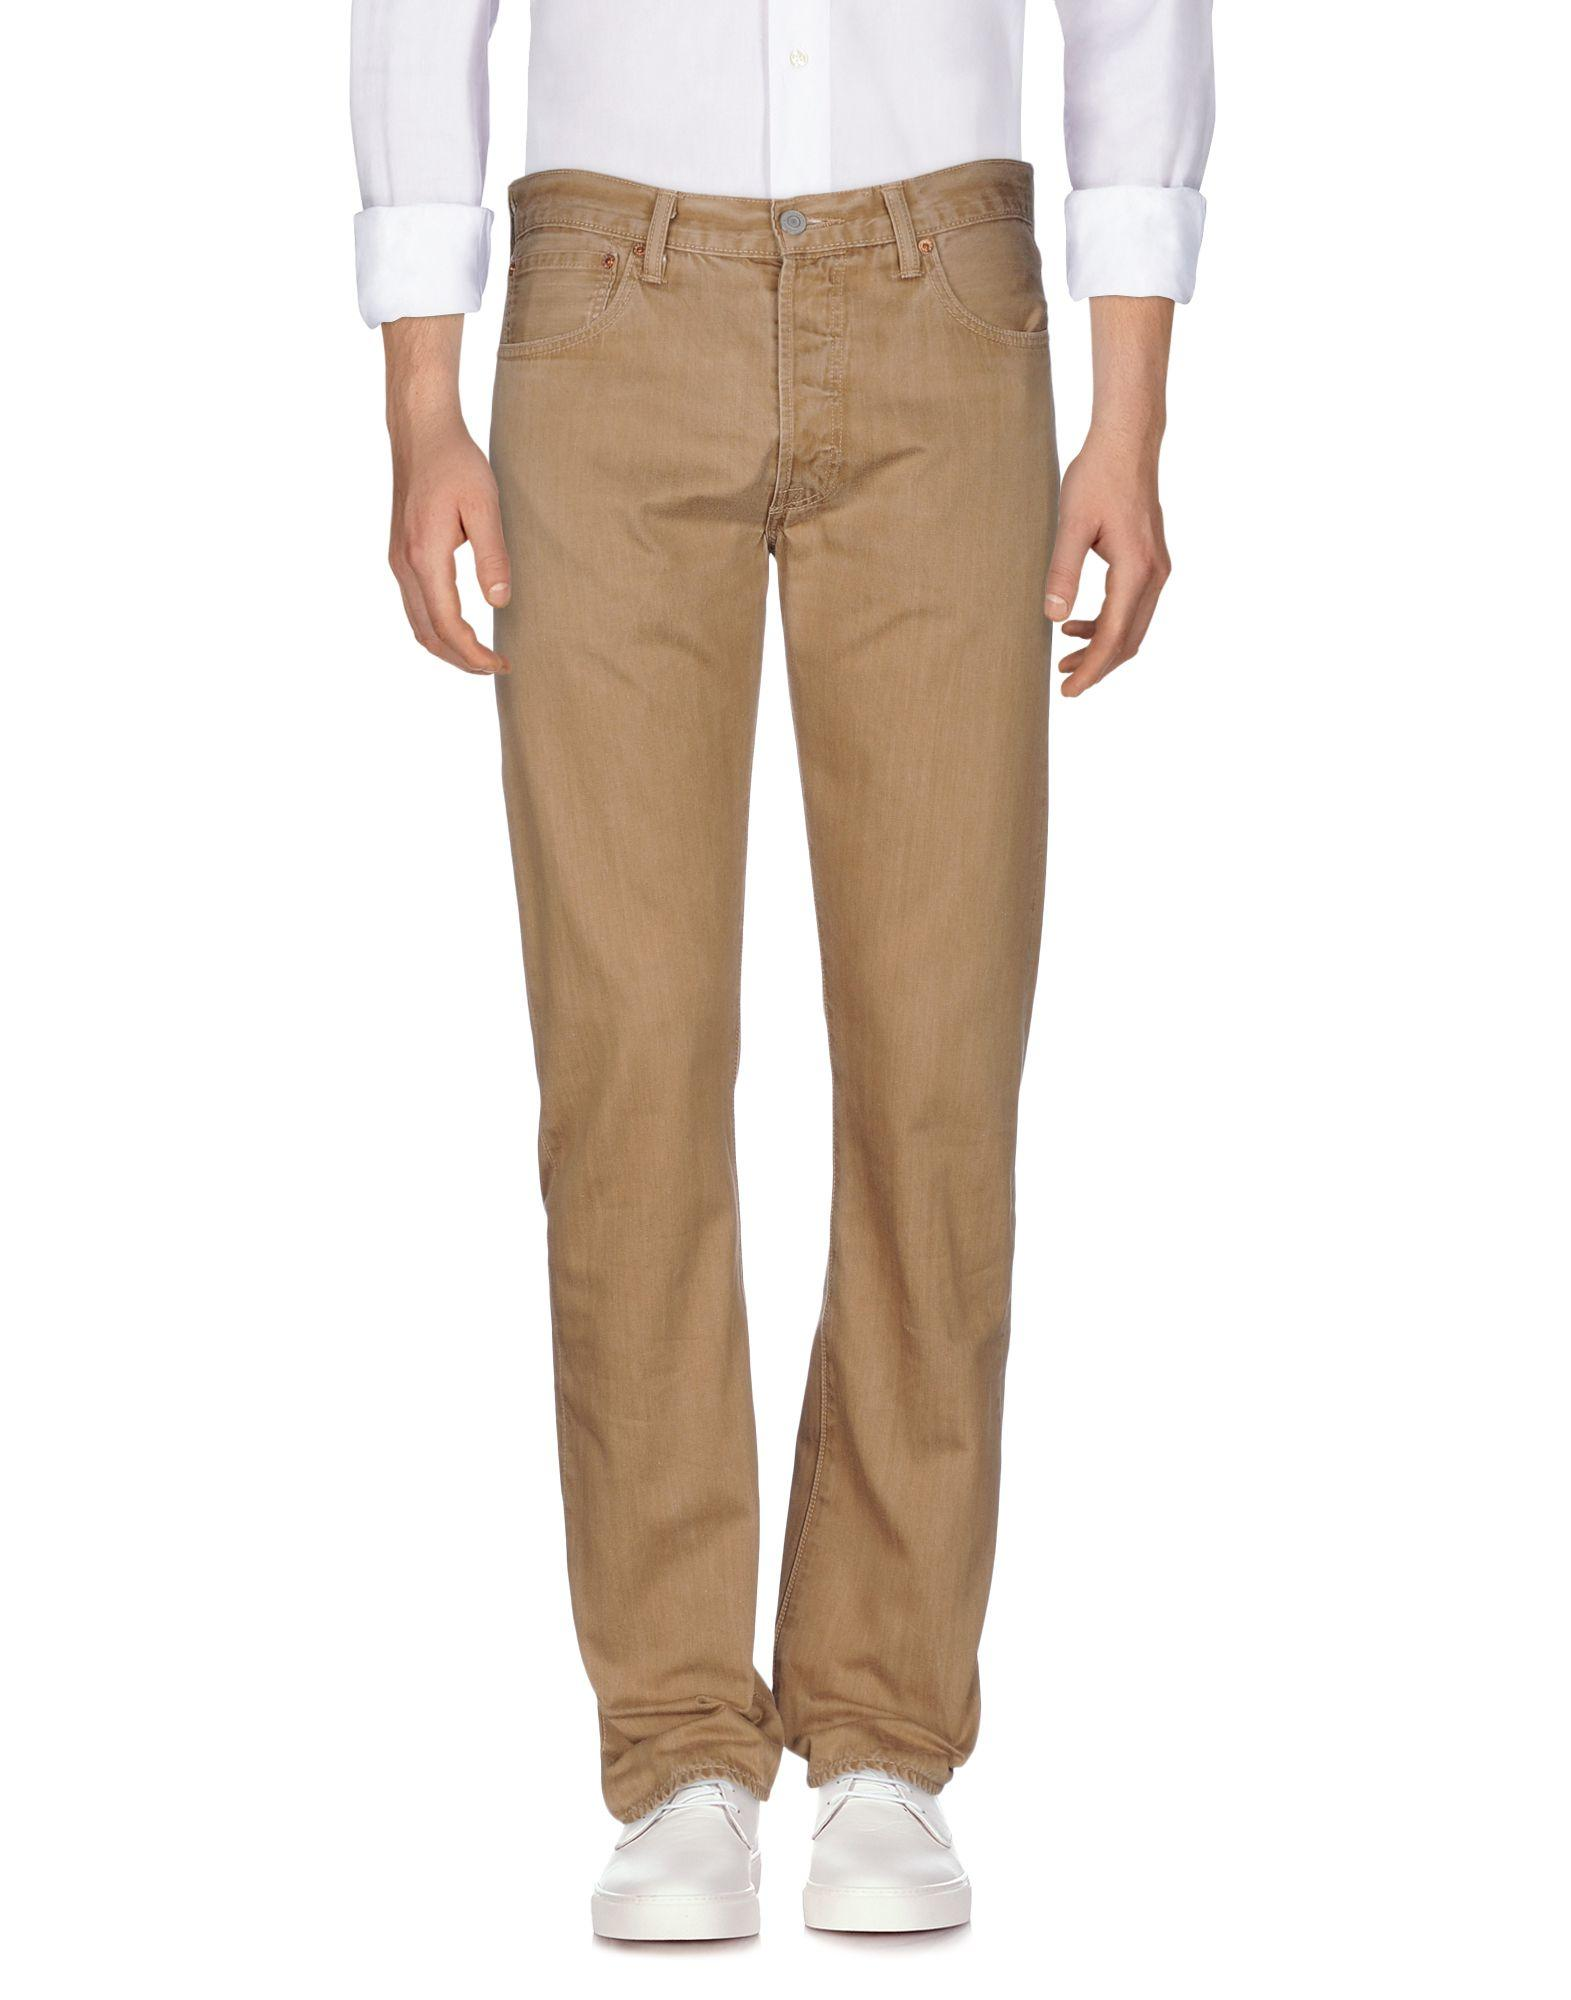 Levi's Jeans In Camel